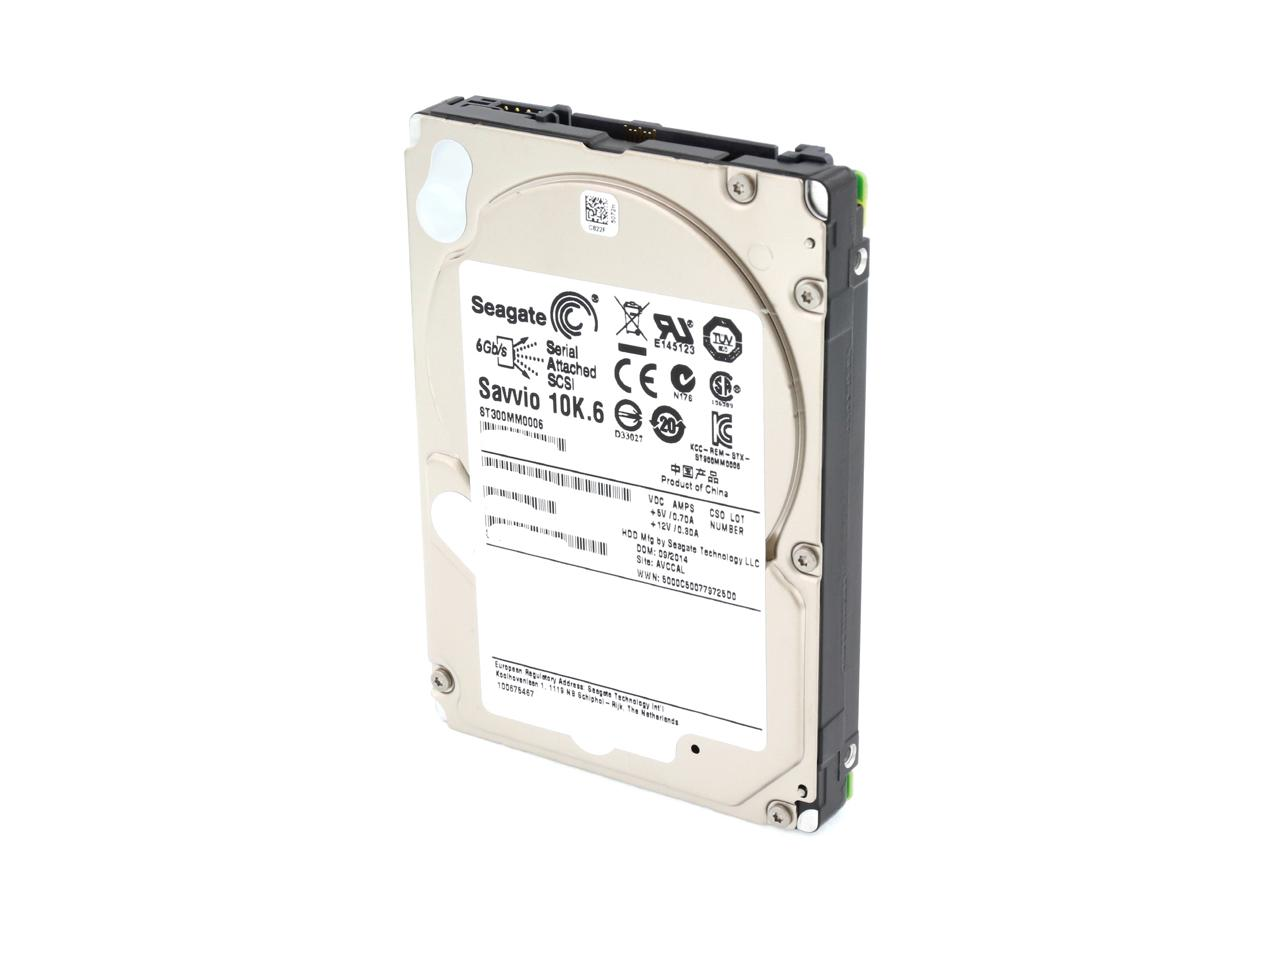 Seagate-ST300MM0006-300GB-10000-RPM-SAS-6Gb-s-2.5-Savvio-10K.6-Hard-Drive